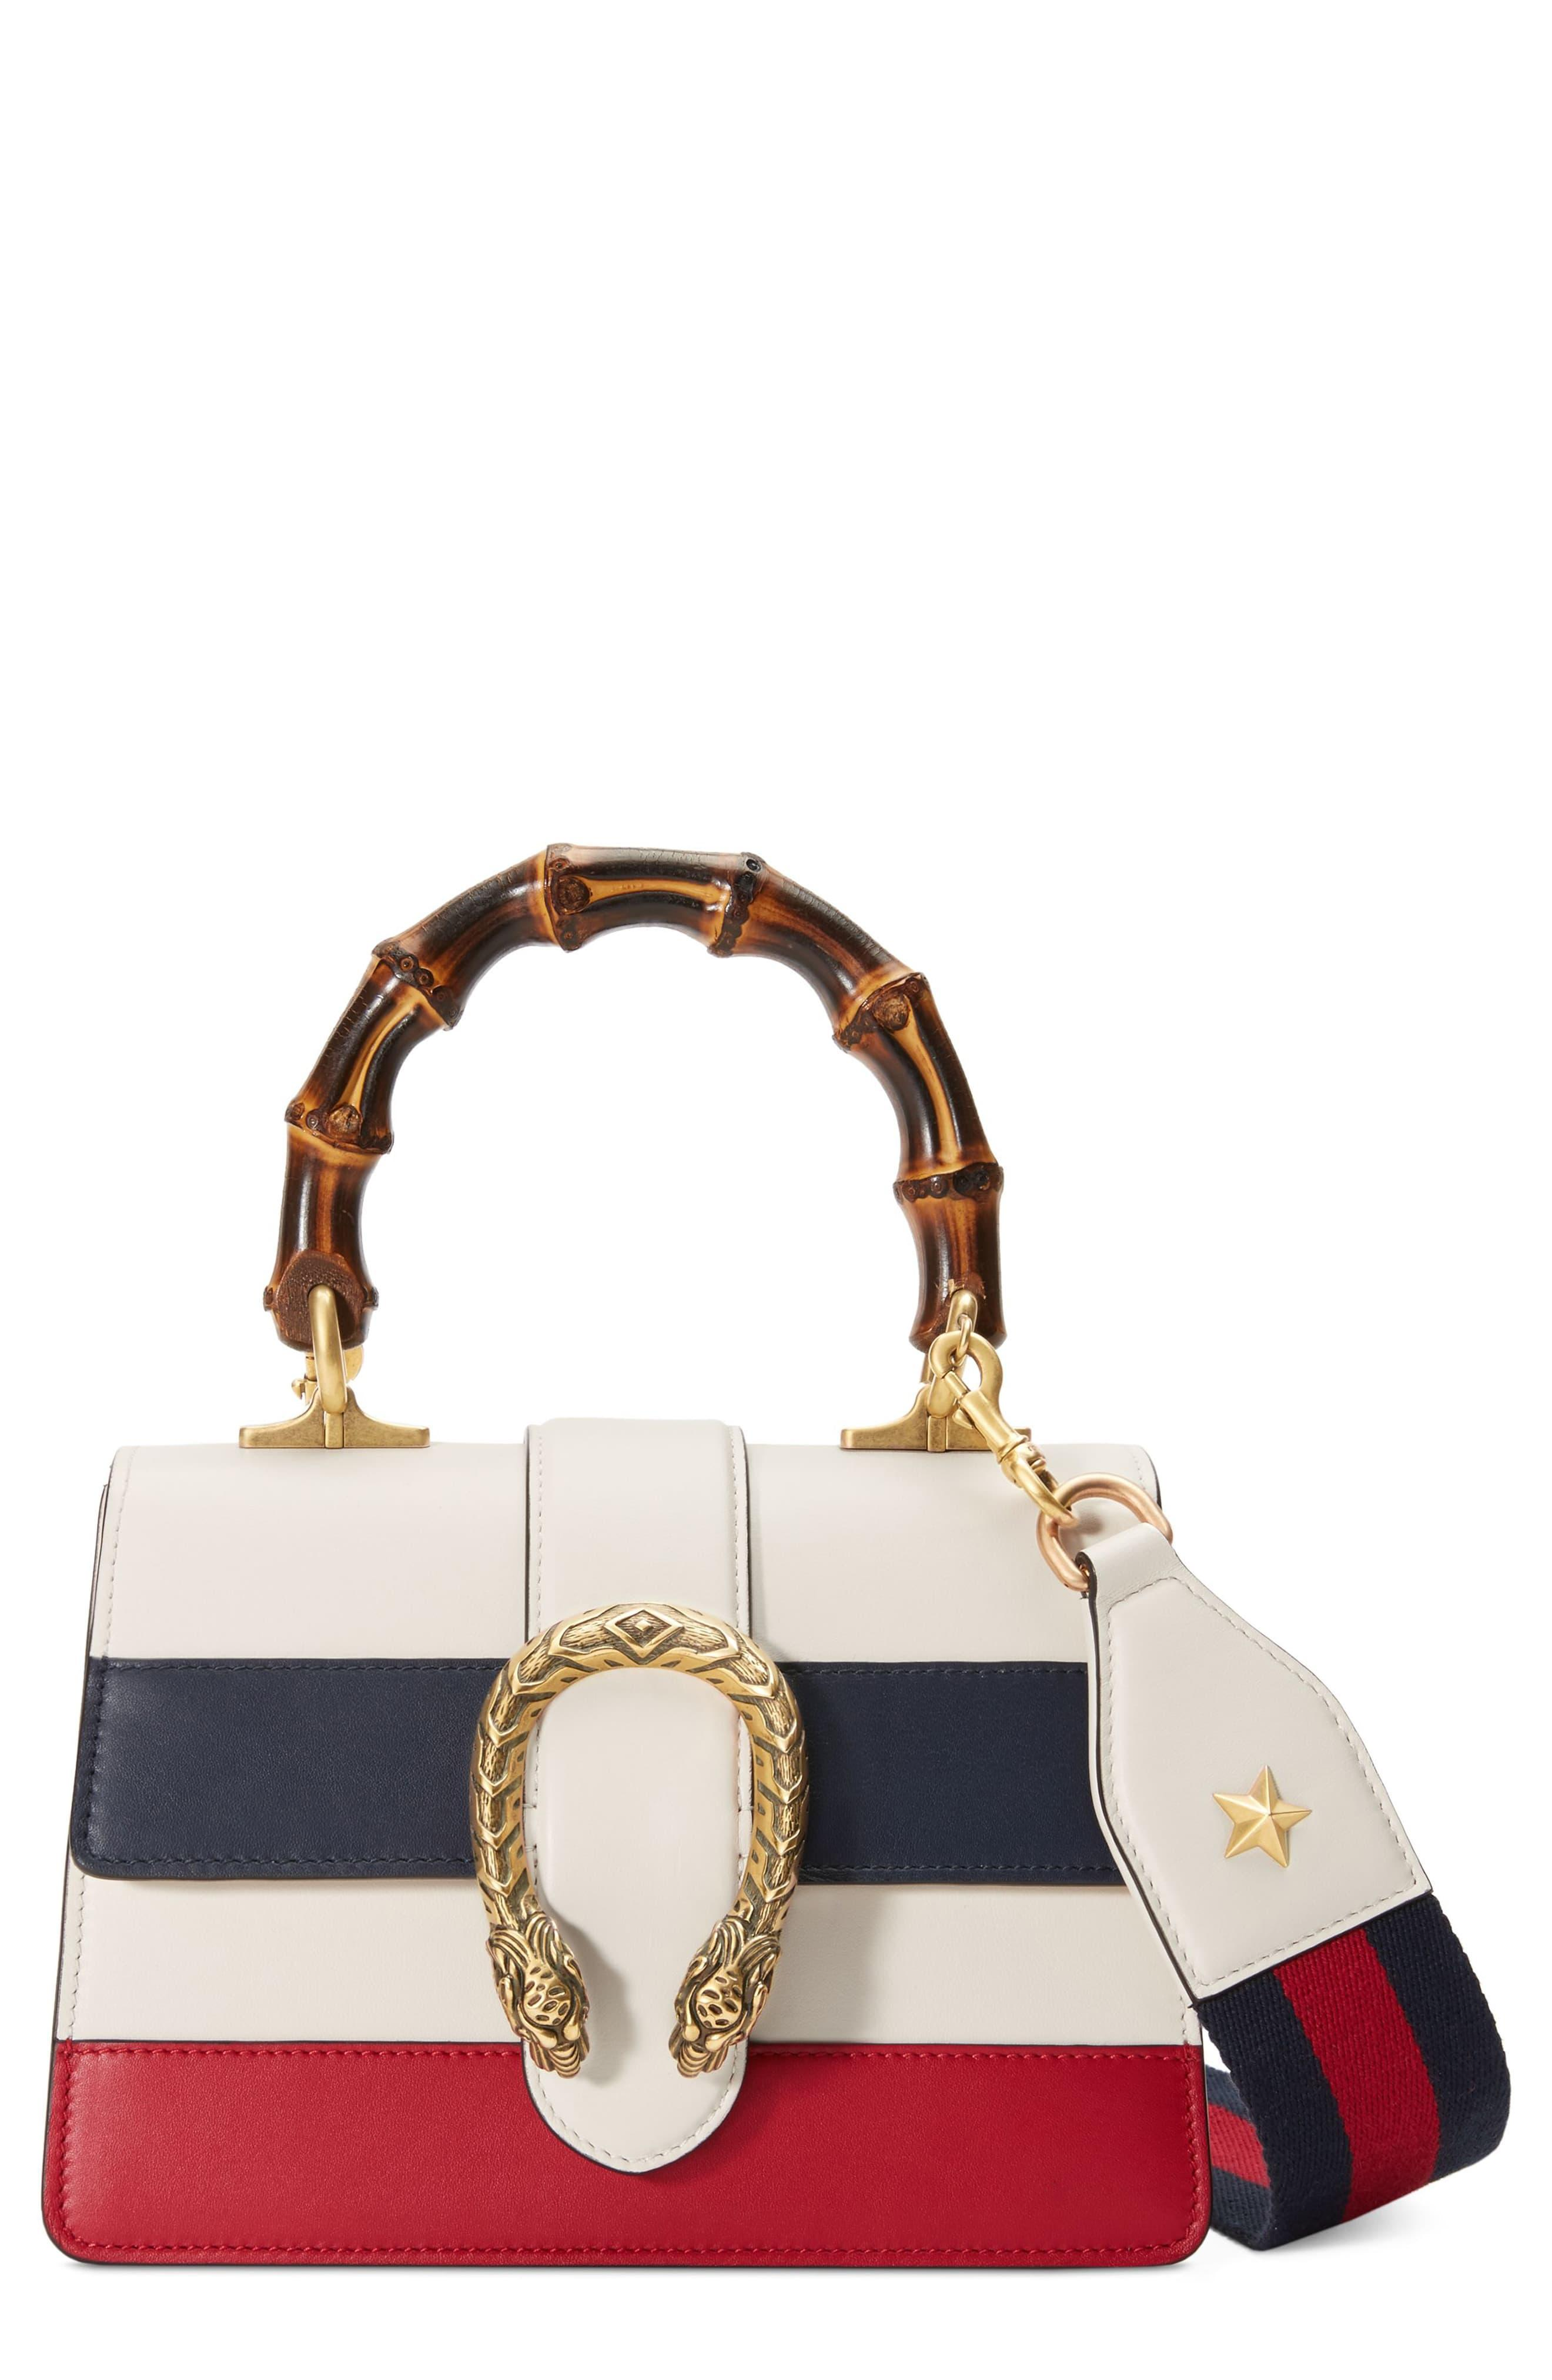 4d47ca454a6b Gucci Dionysus Leather Top Handle Bag in White - Save 24% - Lyst